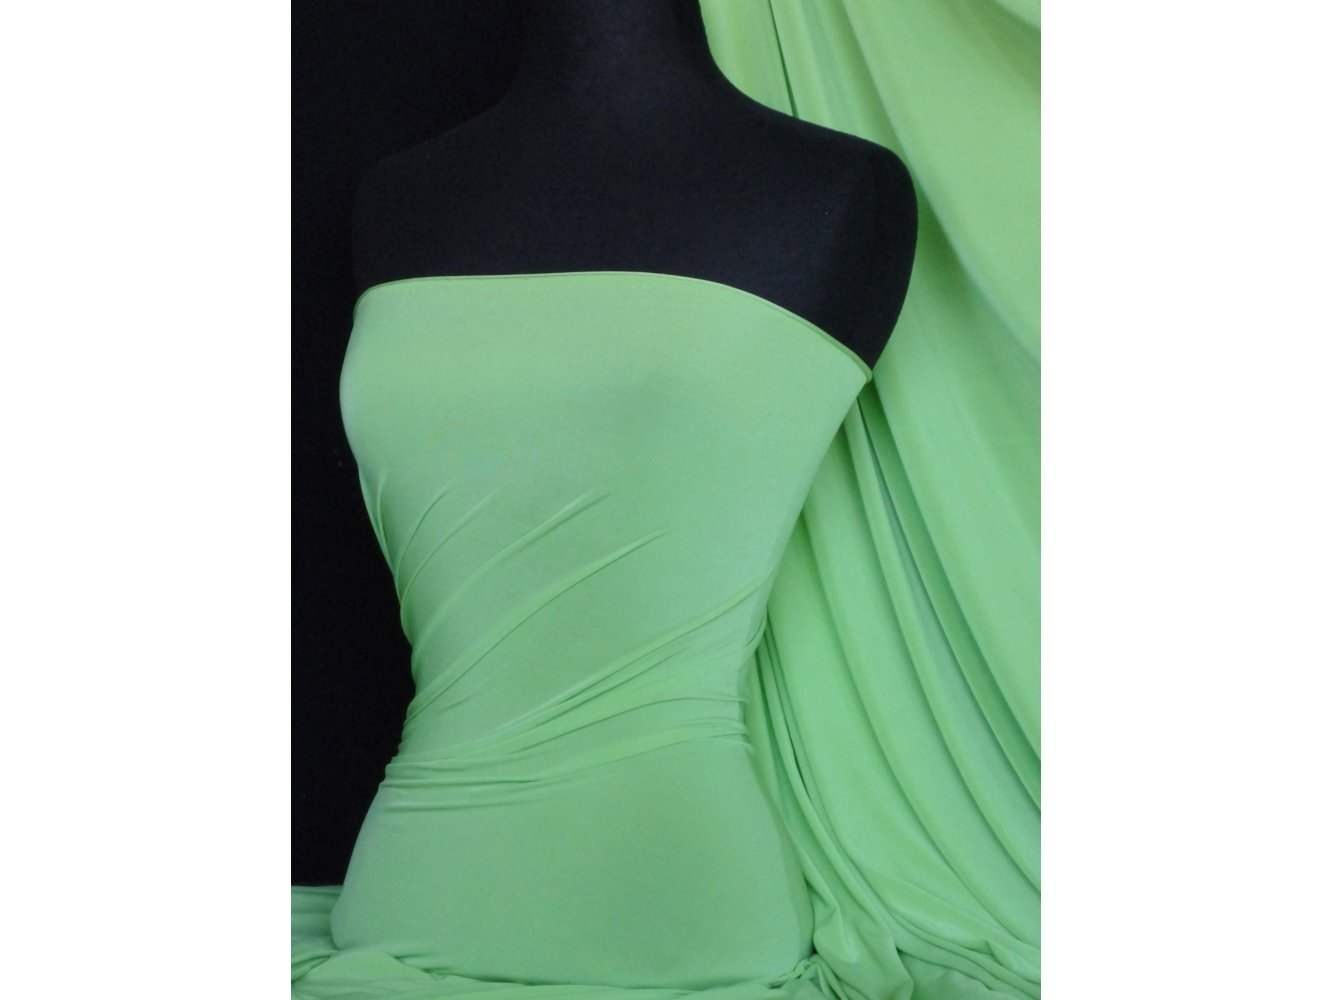 Soft touch 4 way stretch jersey lycra fabric by the meter